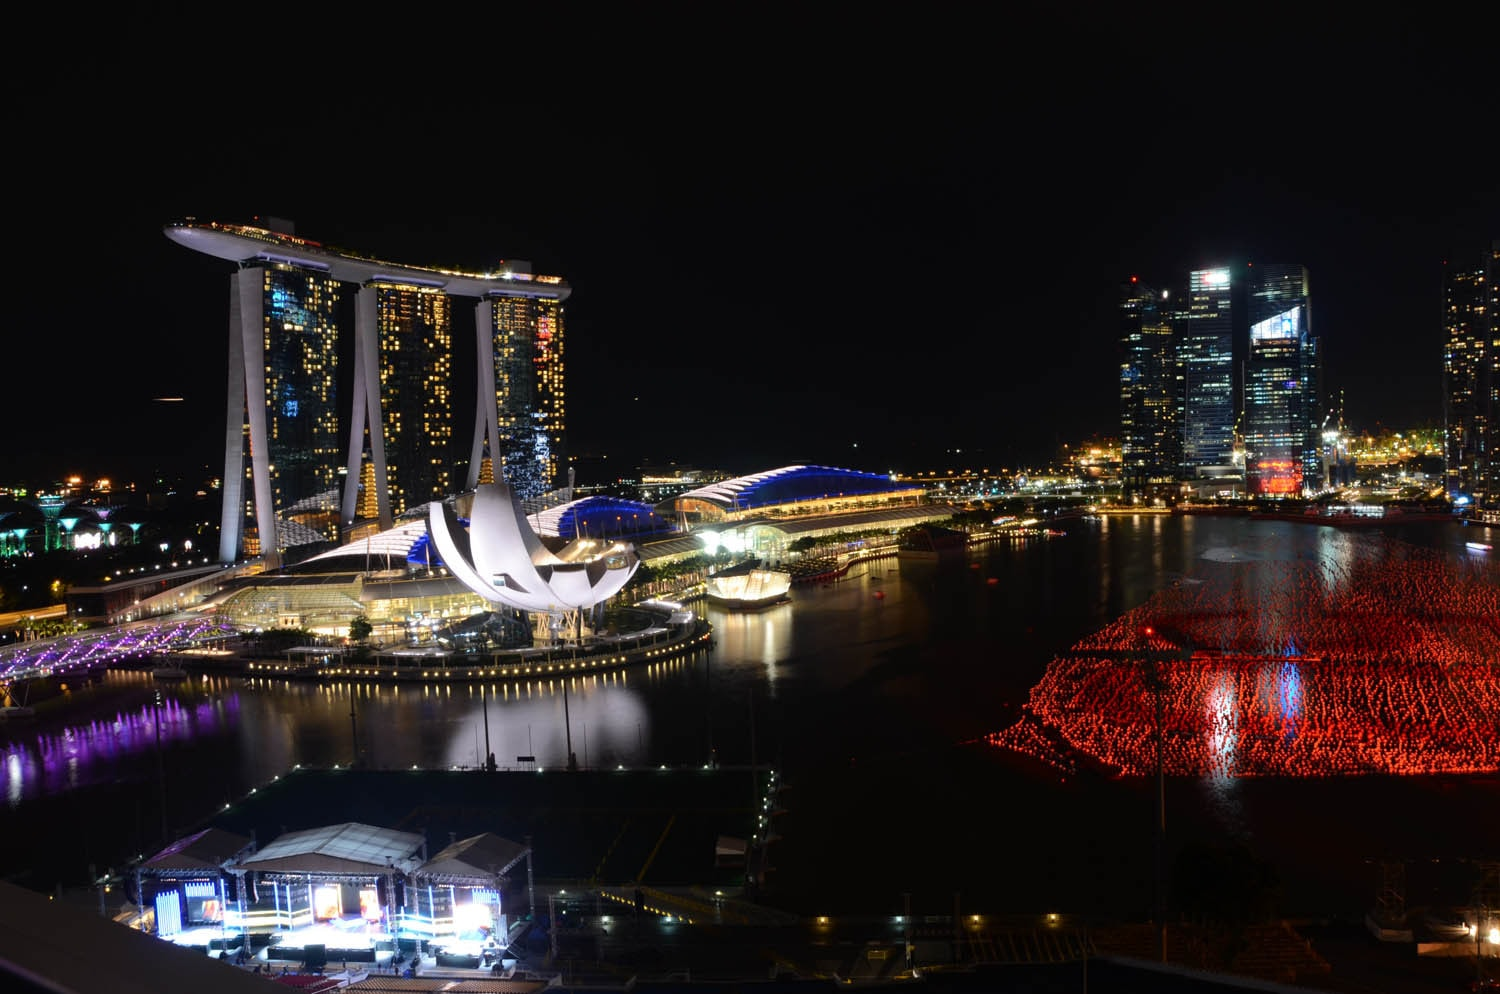 Marina Bay Sands by night